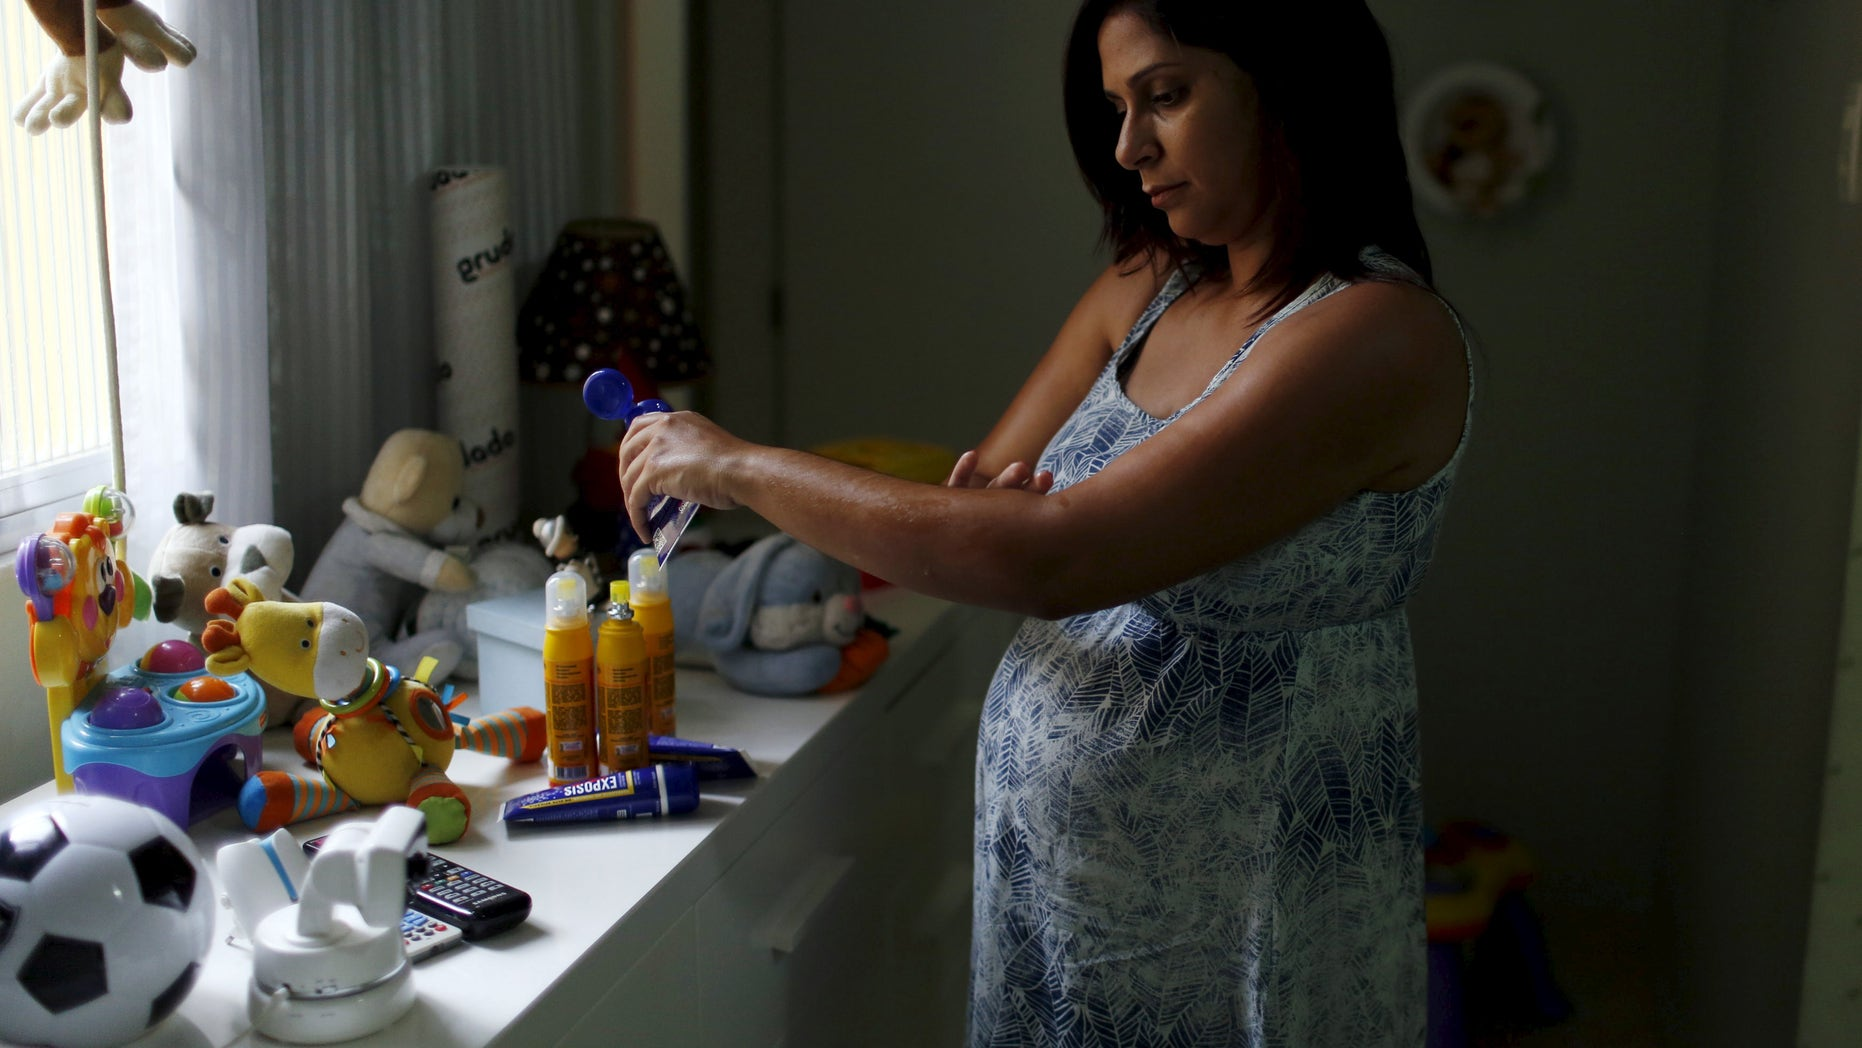 Gisele Felix, who is five months pregnant, applies repellent on her arm at her home in Rio de Janeiro, Brazil, January 28, 2016. Fear of the mosquito-borne Zika virus has Brazilians rushing to buy repellant, creating a shortage of some brands on pharmacy shelves and boosting sales for the industry - a trend some producers are preparing for elsewhere as the outbreak spreads. Picture taken January 28, 2016. REUTERS/Pilar Olivares - RTX25L1M